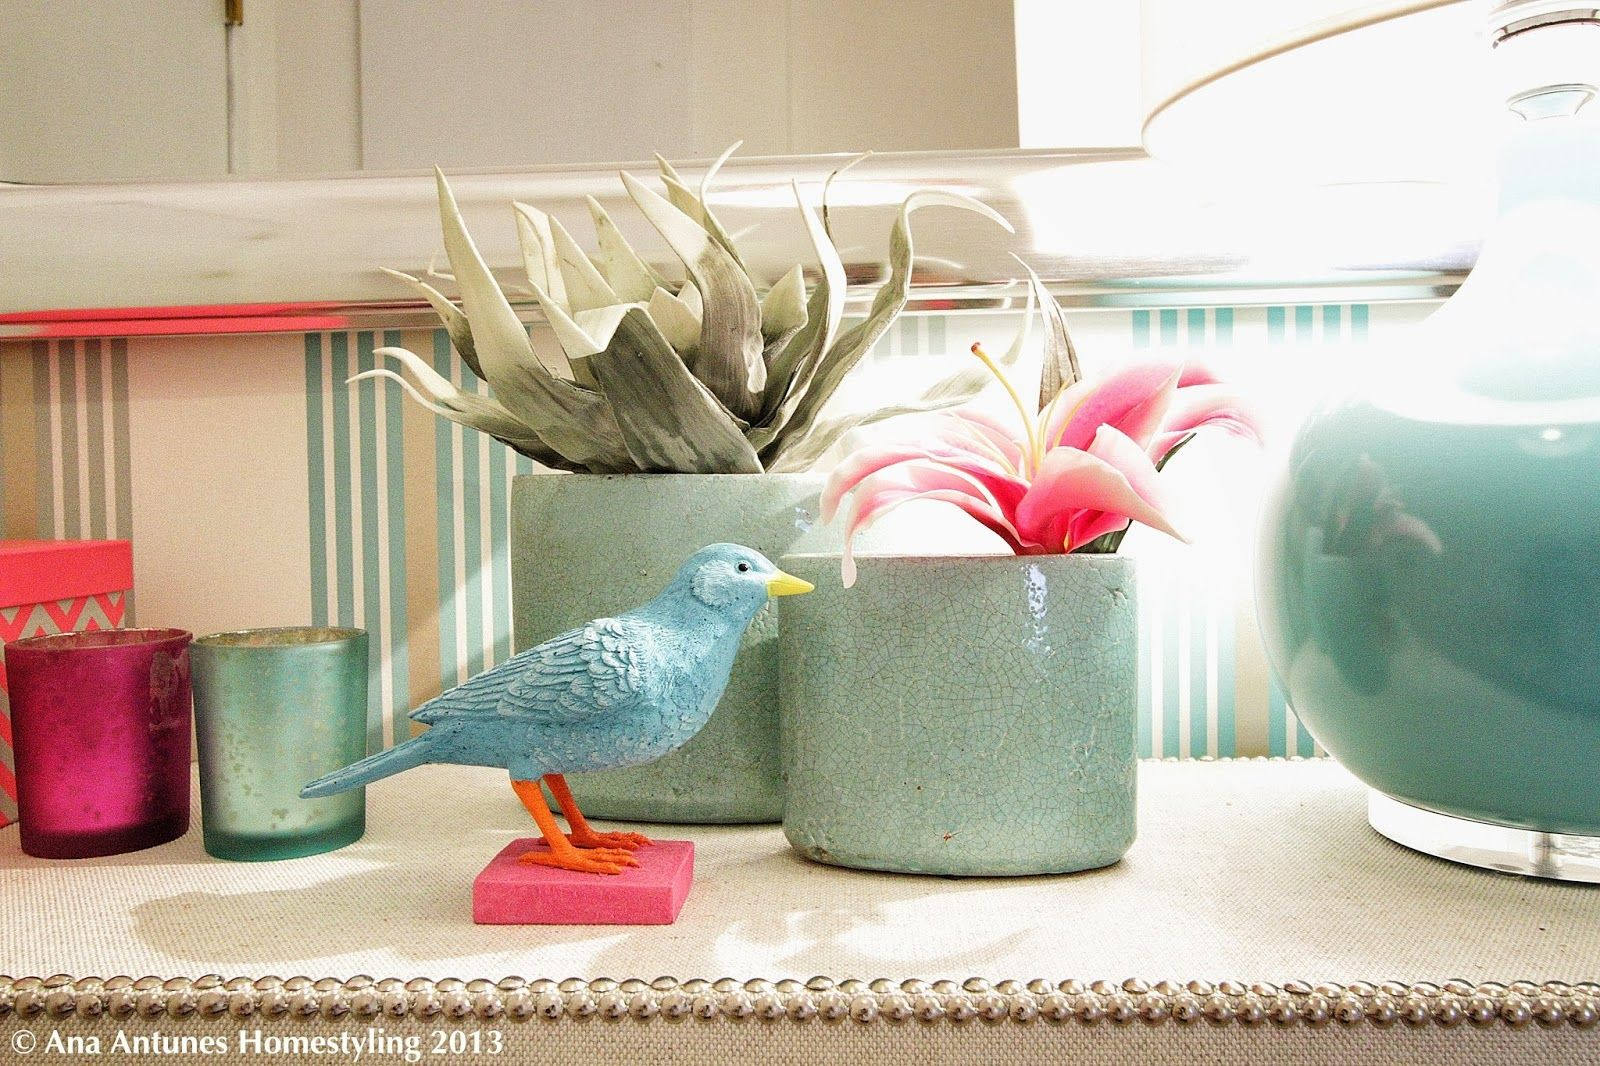 ana antunes home styling, spain love the pink feet on the bird